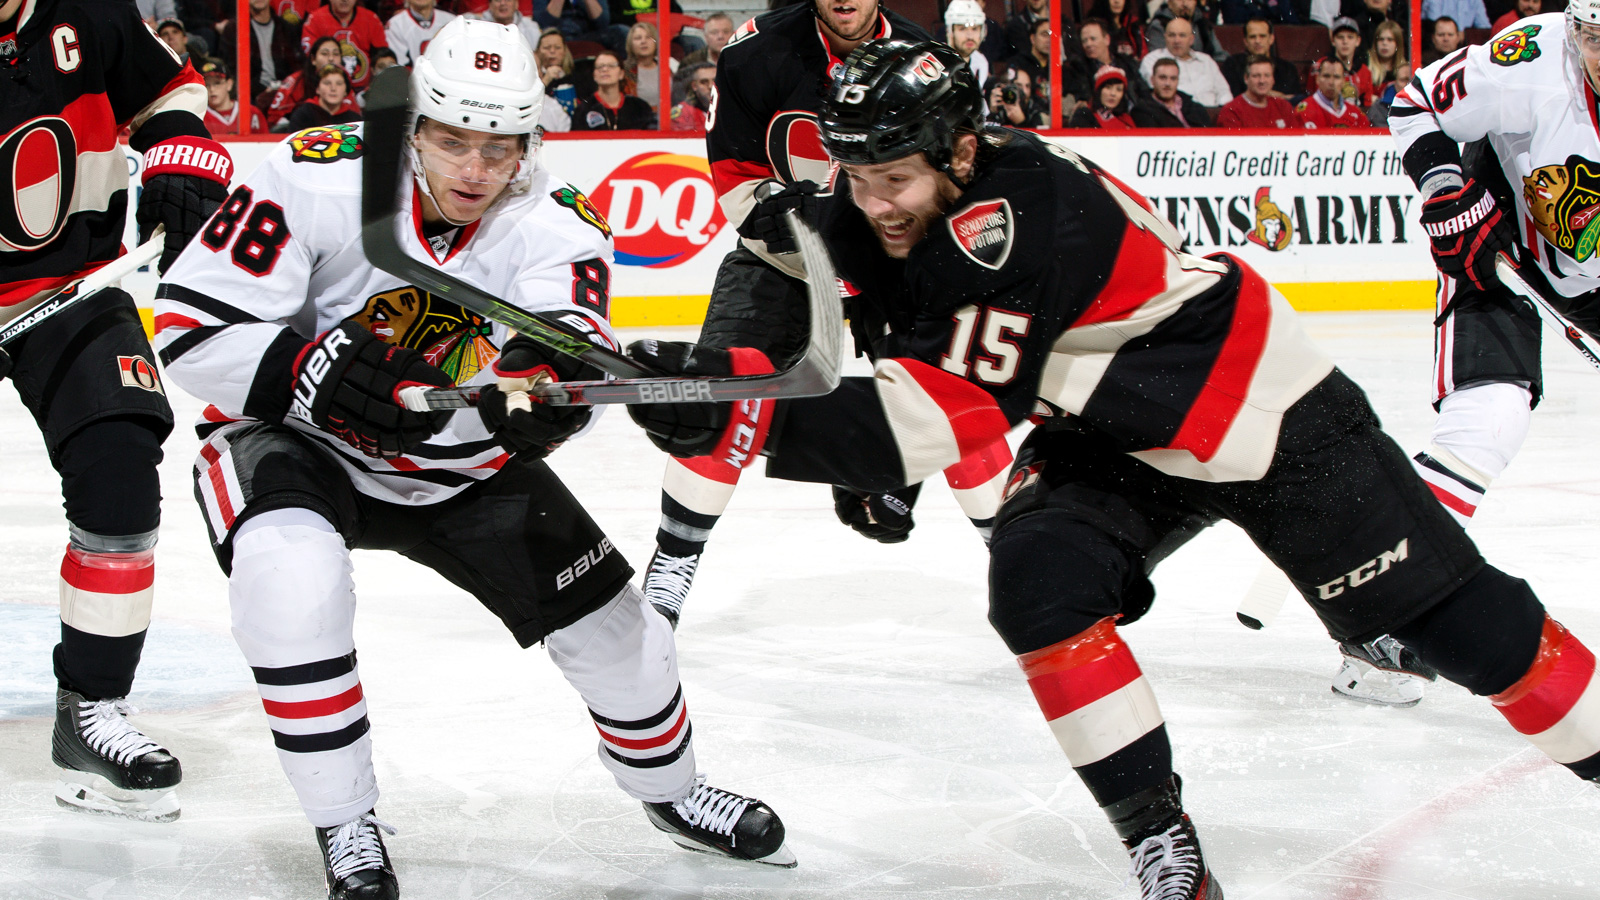 Kane extends point streak to 21 games, but 'Hawks fall to Sens in OT